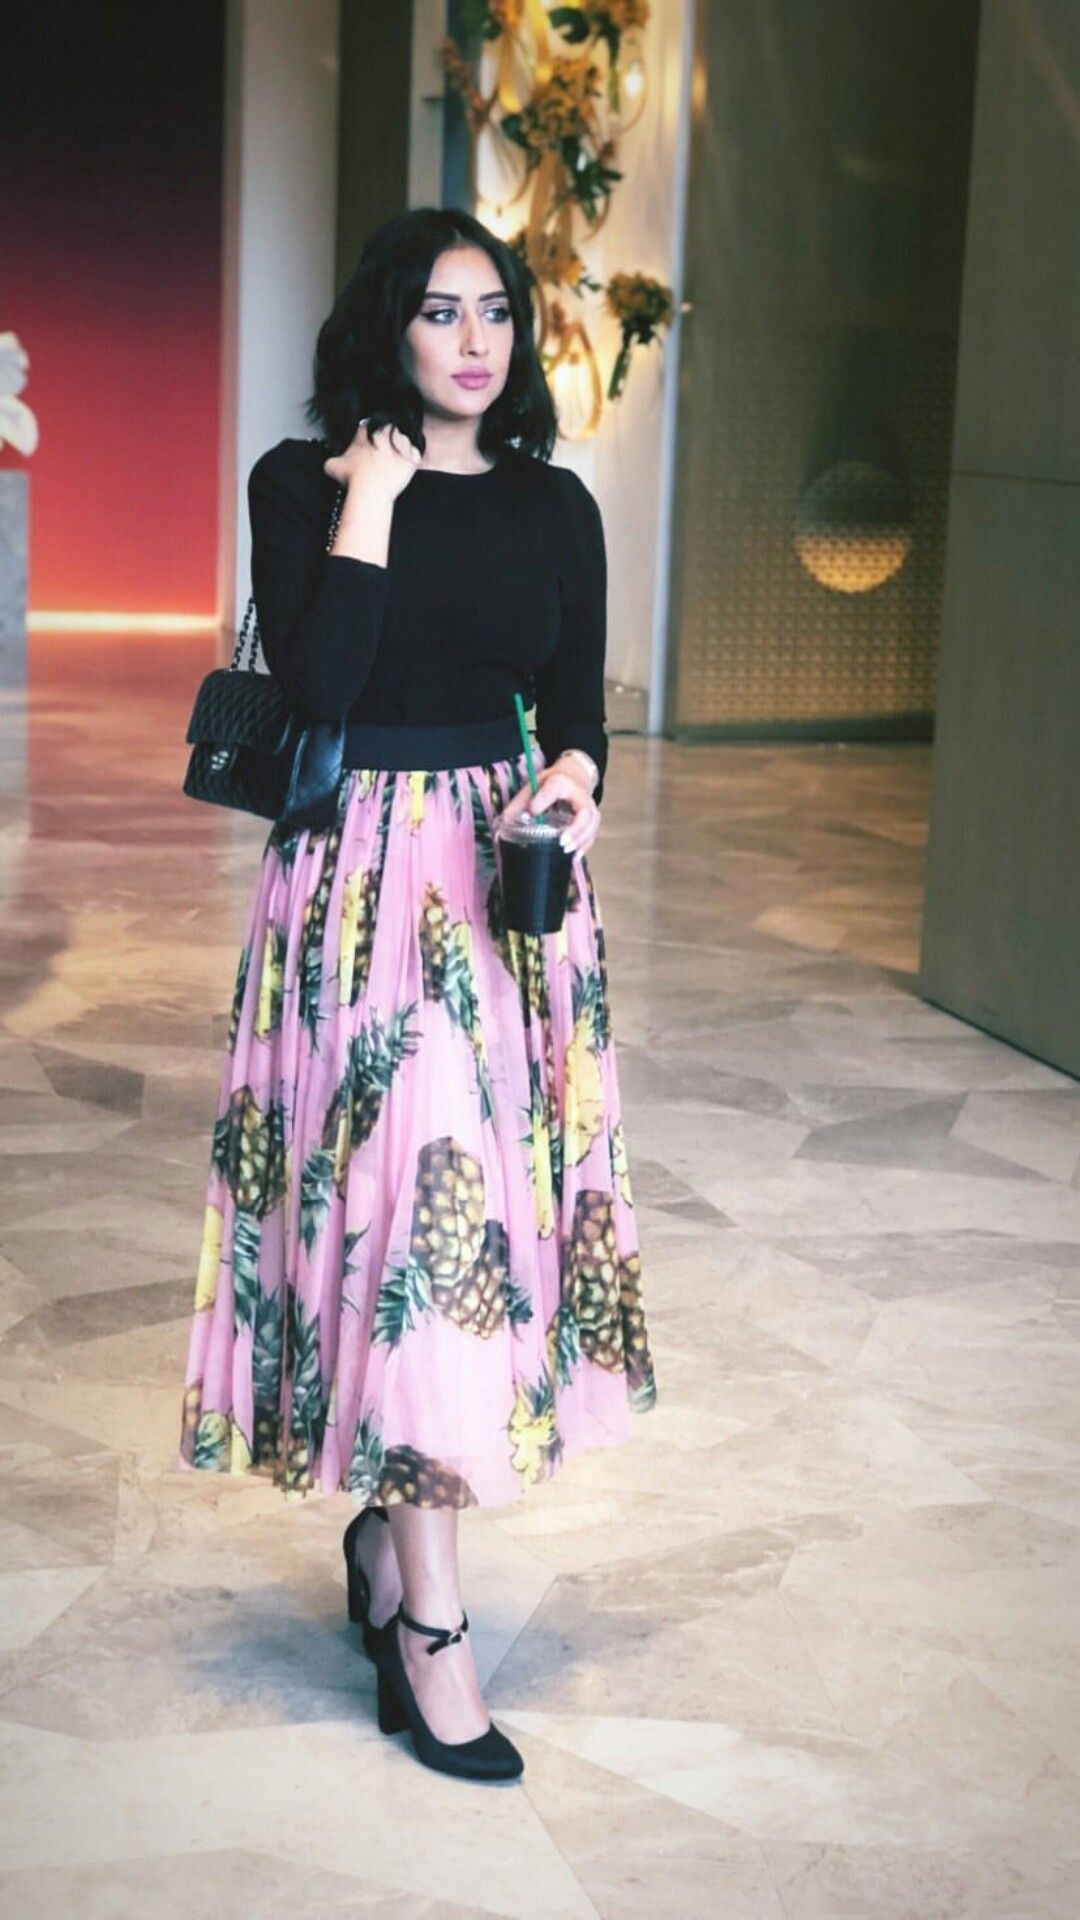 Pin By Nada On فرح الهادي Pretty Outfits Style Outfits